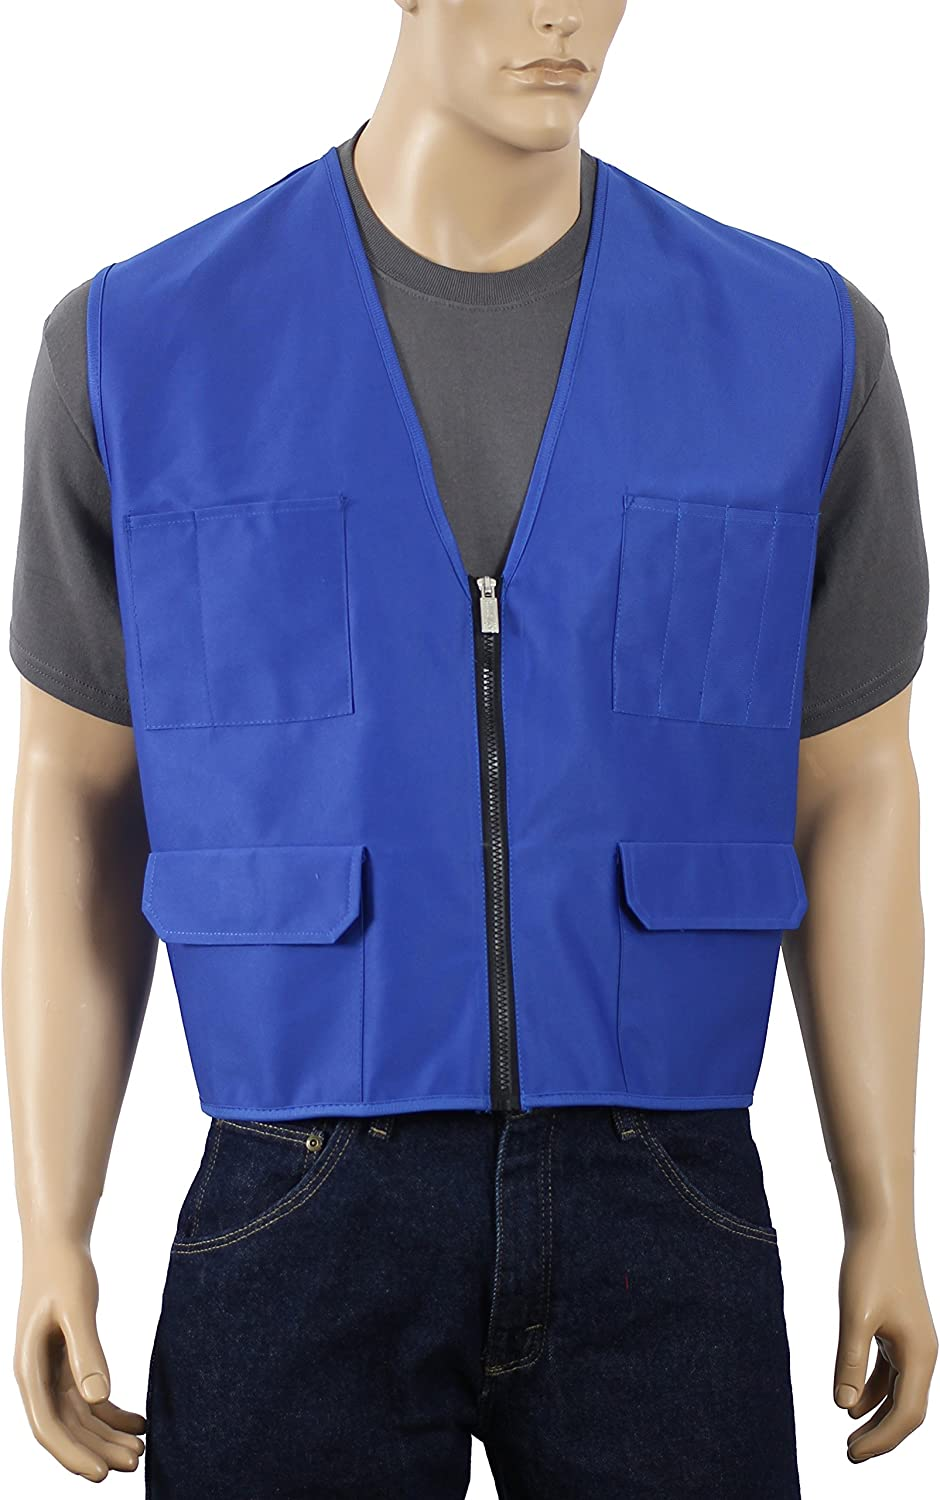 Lime, Medium Safety Depot Multiple Colors Safety Vest with Pockets No Stripe Reflective Tape Simple Economy 8048B